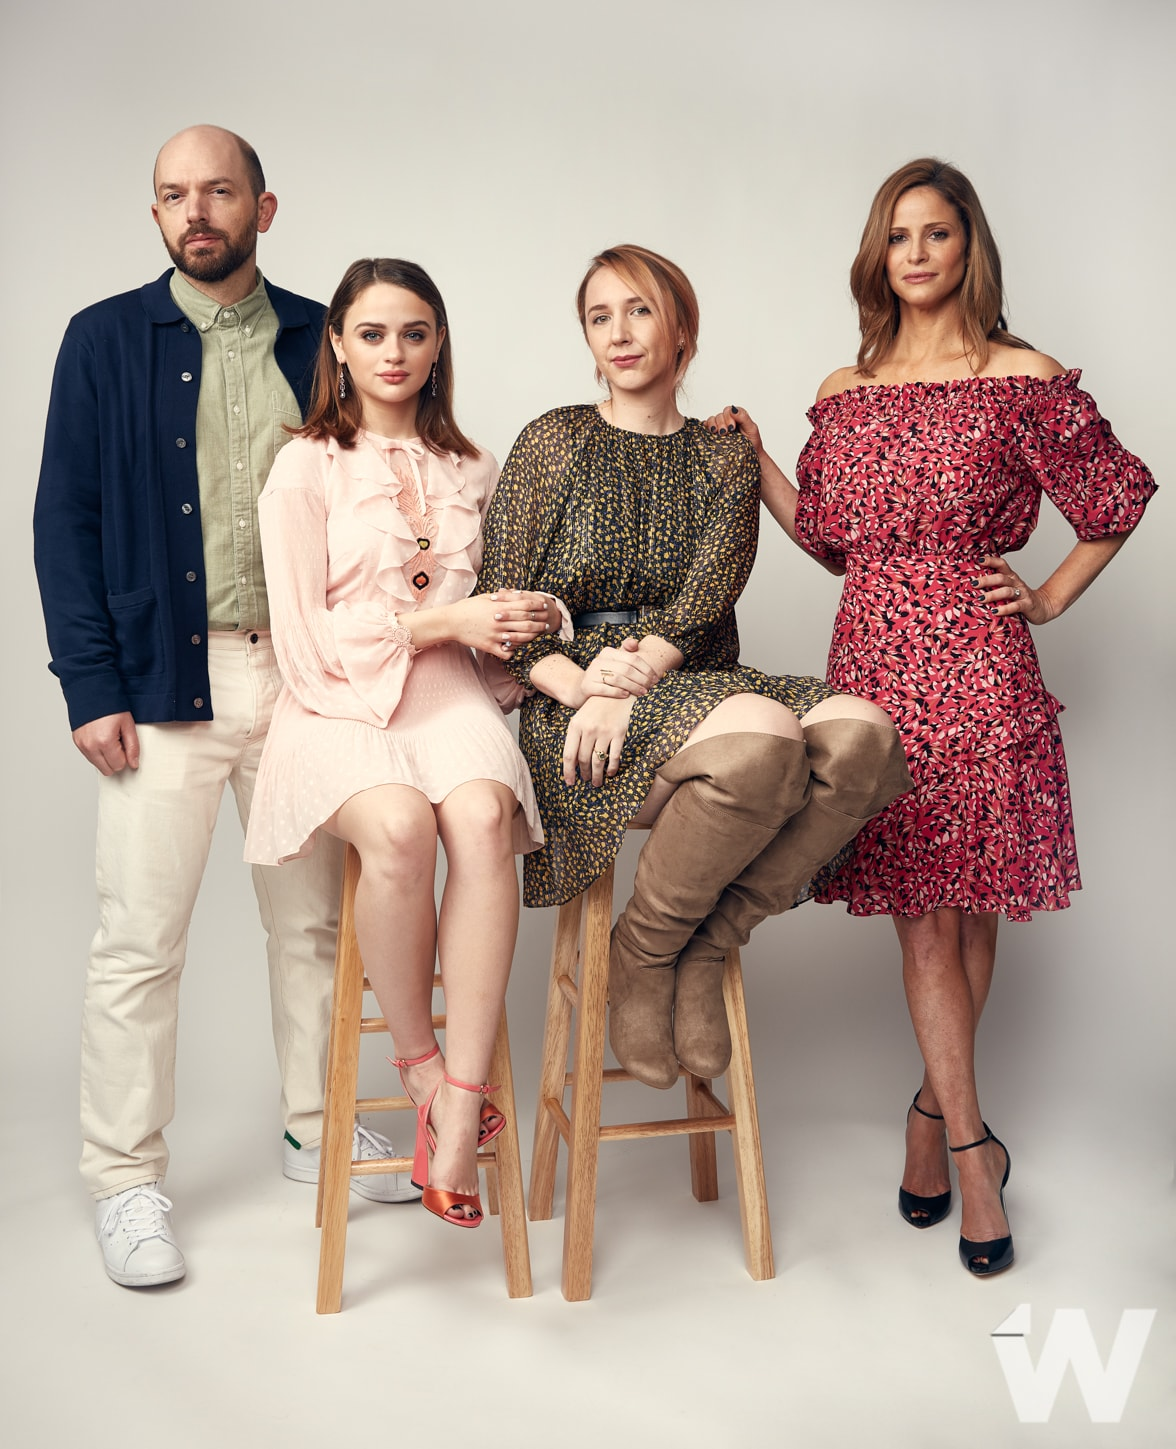 SXSW 2018 Paul Scheer Joey King Becca Gleason Andrea Savage Summer 03